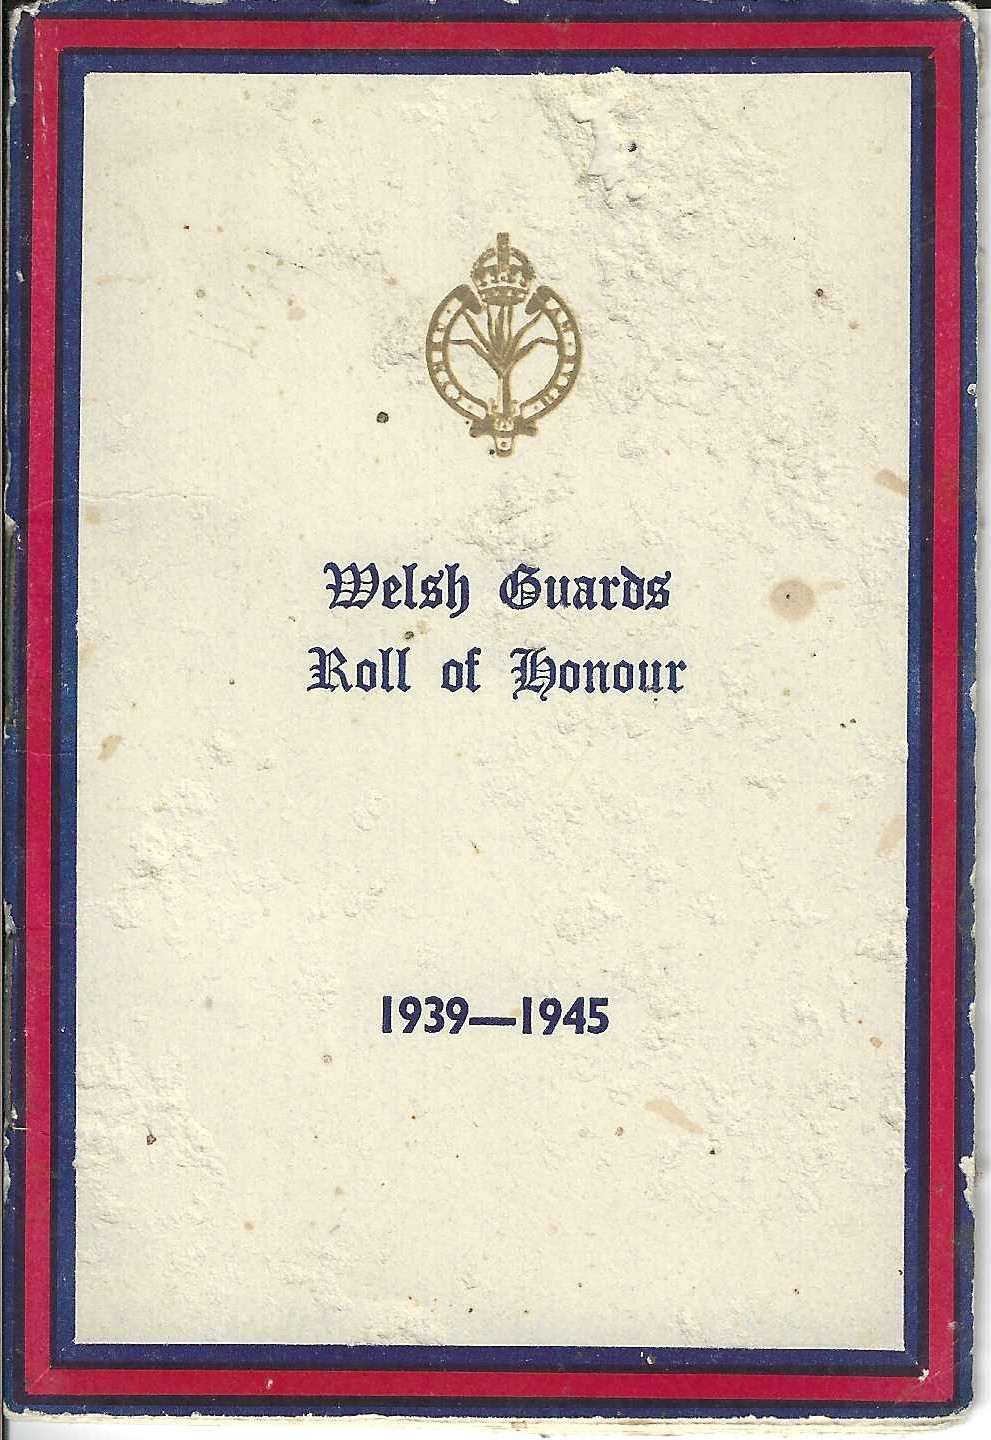 Roll of Honour Welsh Guards, 1945 (collection P. Reinders)